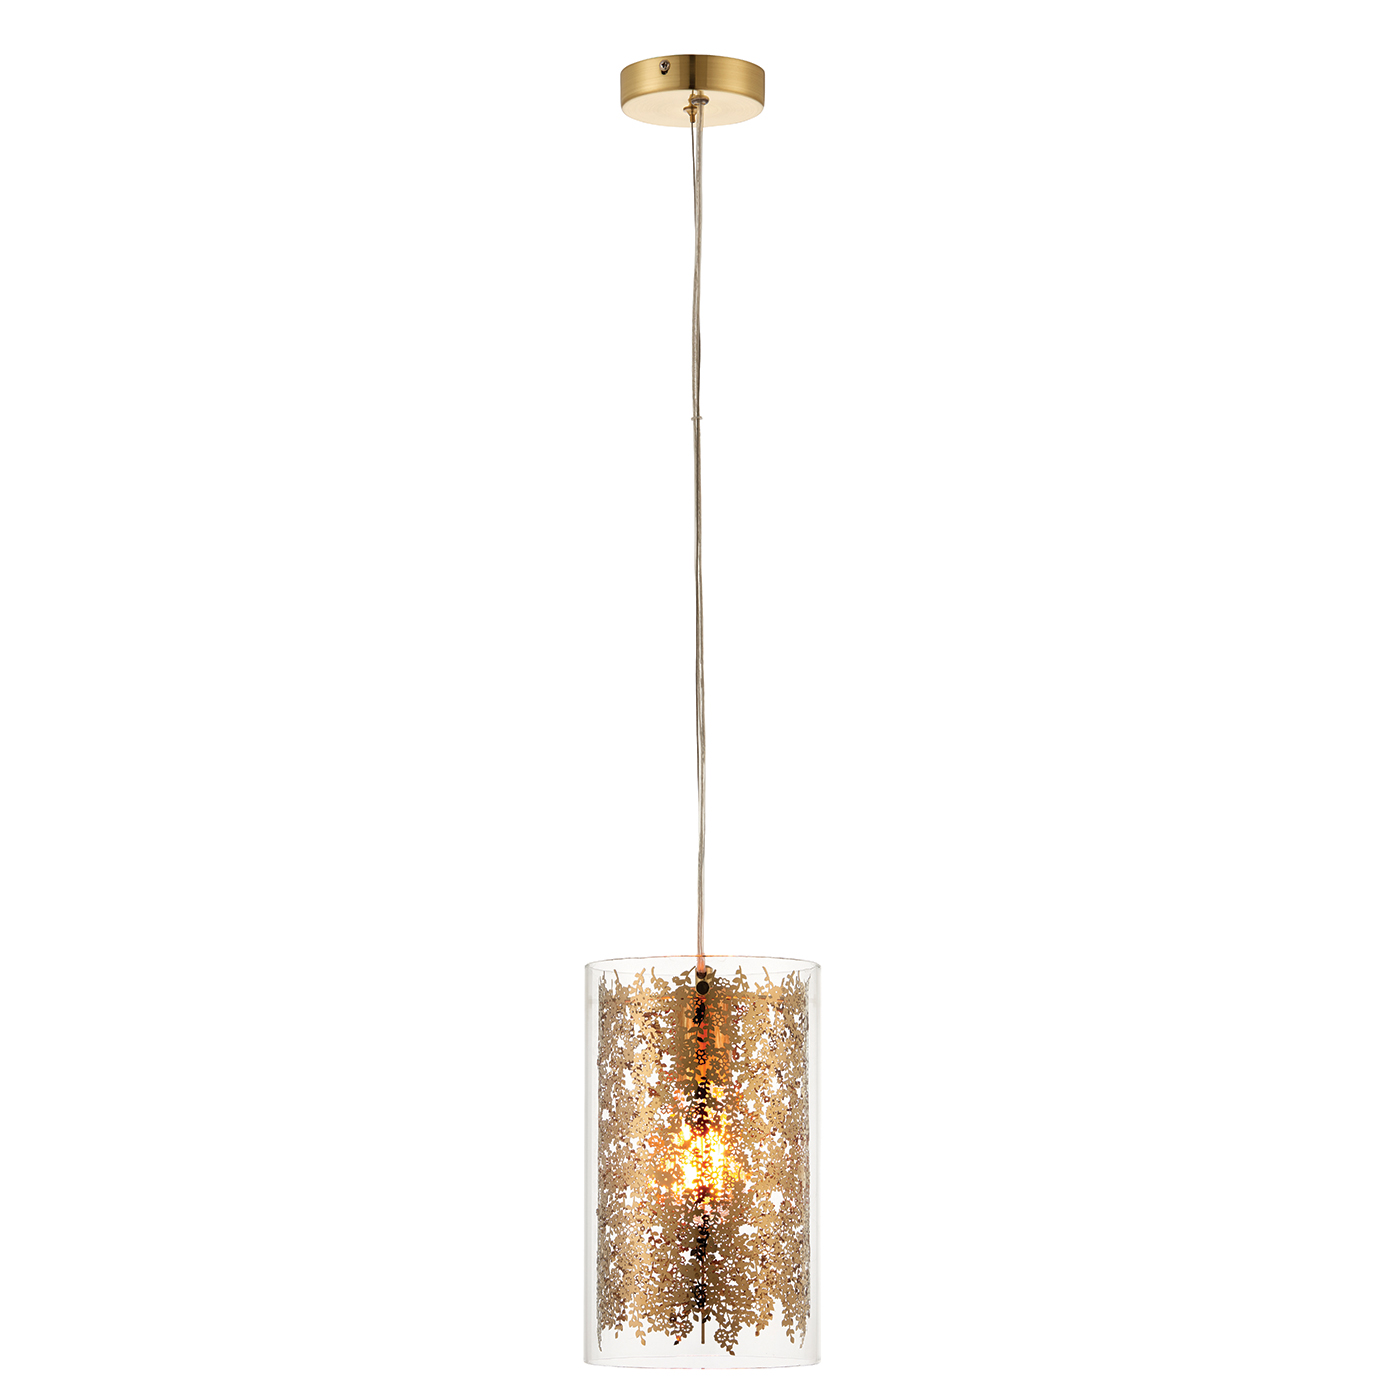 Endon Lacy pendant 1x 40W Clear glass & brass effect plate Thumbnail 1